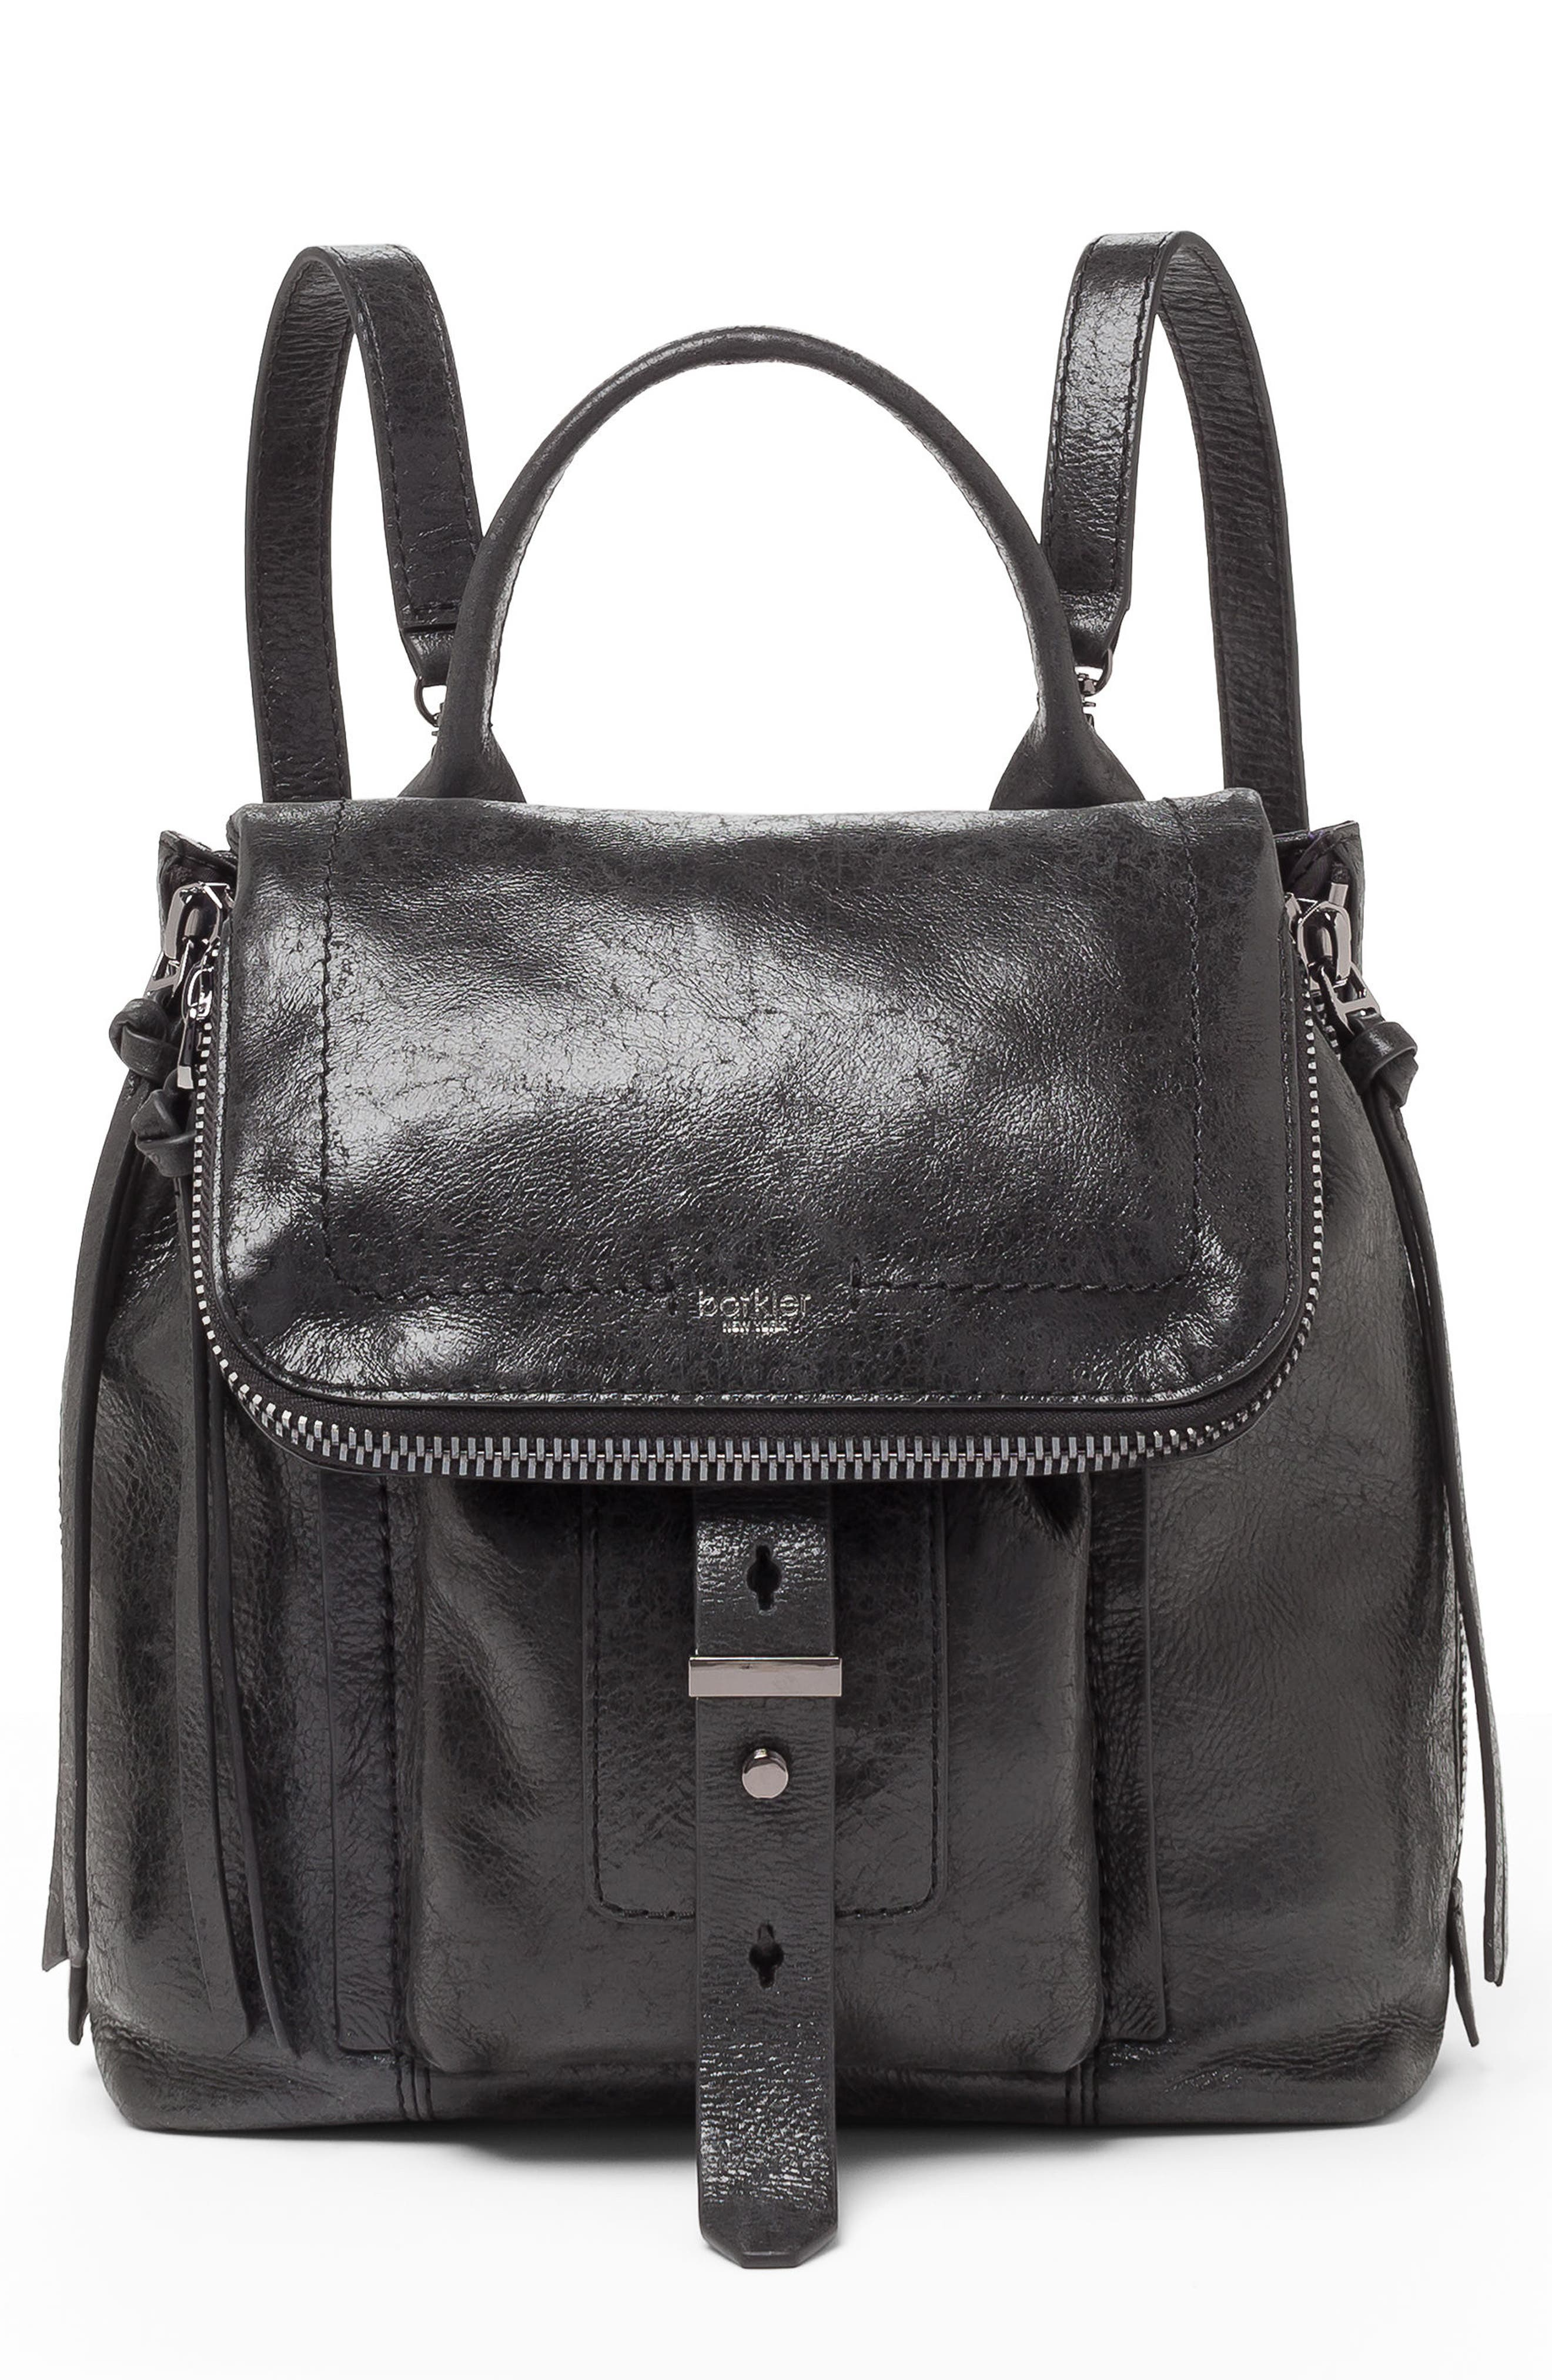 Warren Leather Backpack,                             Main thumbnail 1, color,                             BLACK